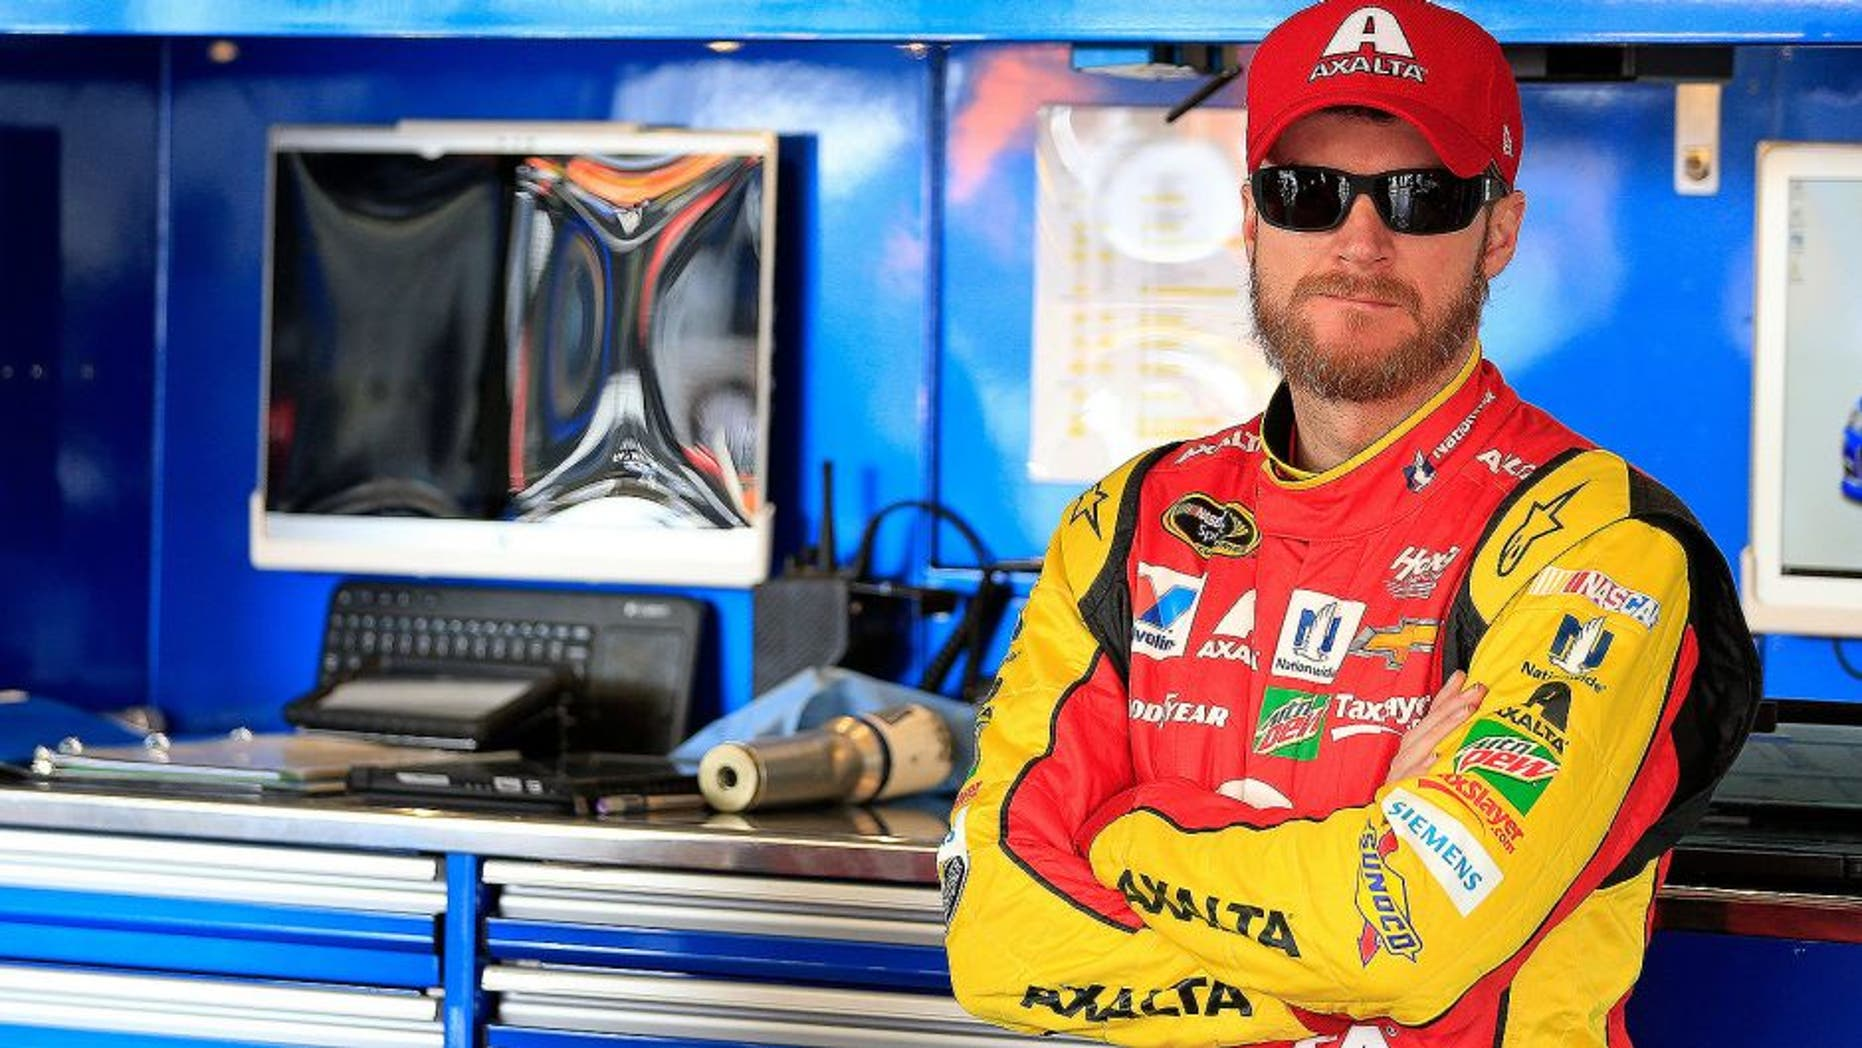 AVONDALE, AZ - MARCH 11: Dale Earnhardt Jr, driver of the #88 Axalta Chevrolet, stands in the garage area during practice for the NASCAR Sprint Cup Series Good Sam 500 at Phoenix International Raceway on March 11, 2016 in Avondale, Arizona. (Photo by Chris Trotman/Getty Images)